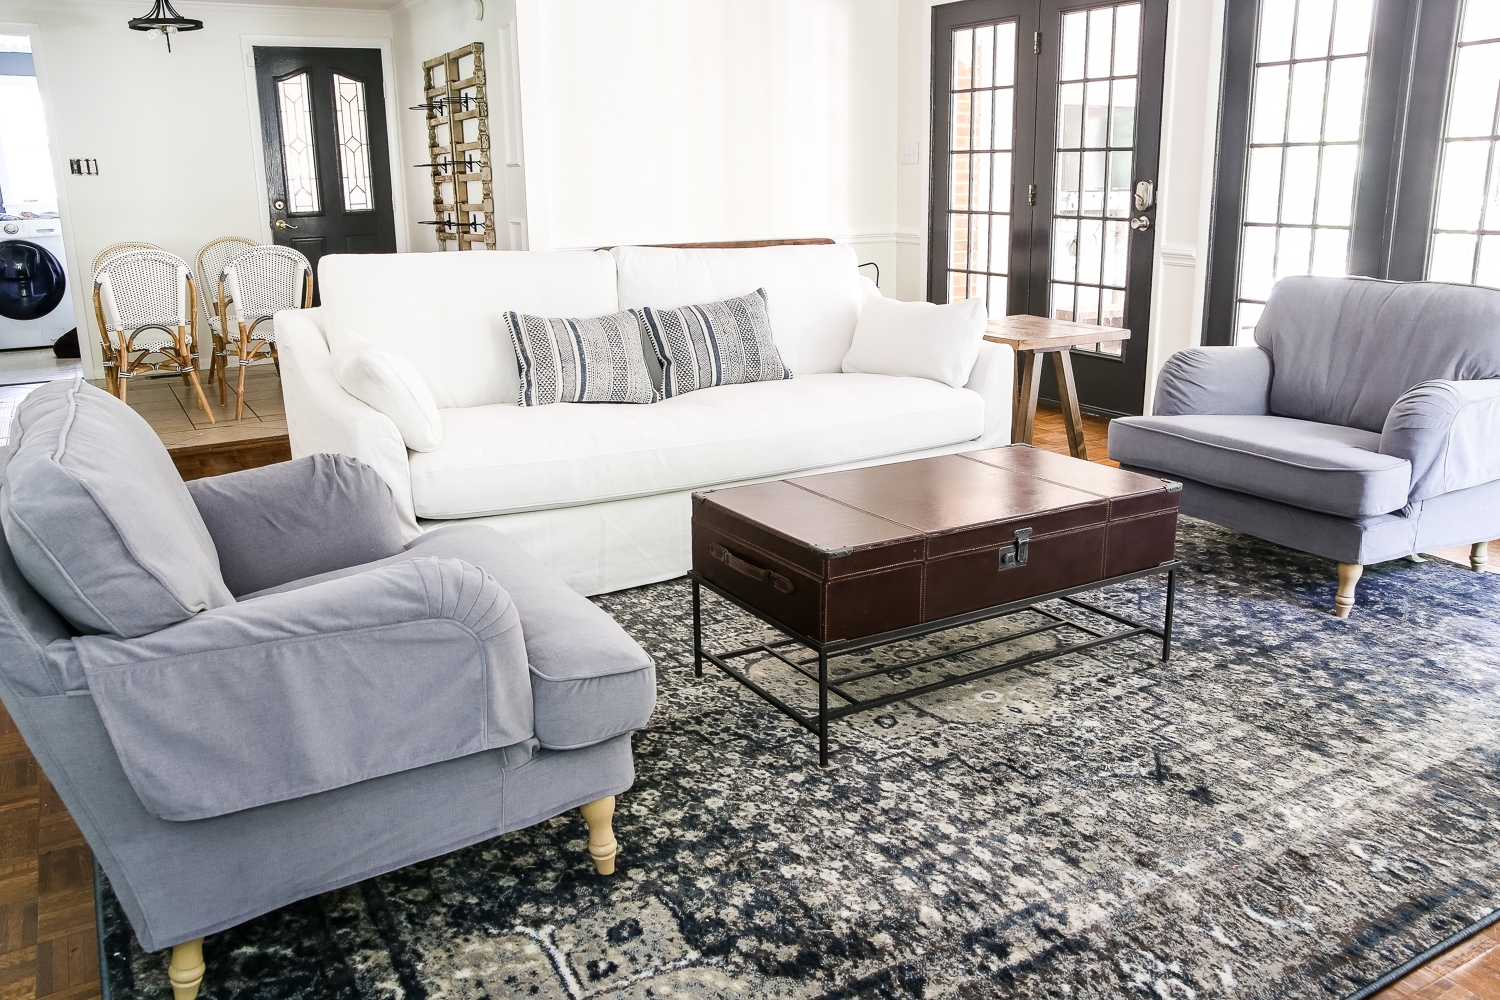 Well Known Comfortable Sofas And Chairs Pertaining To Ikea's New Sofa And Chairs And How To Keep Them Clean – Bless'er House (View 13 of 15)